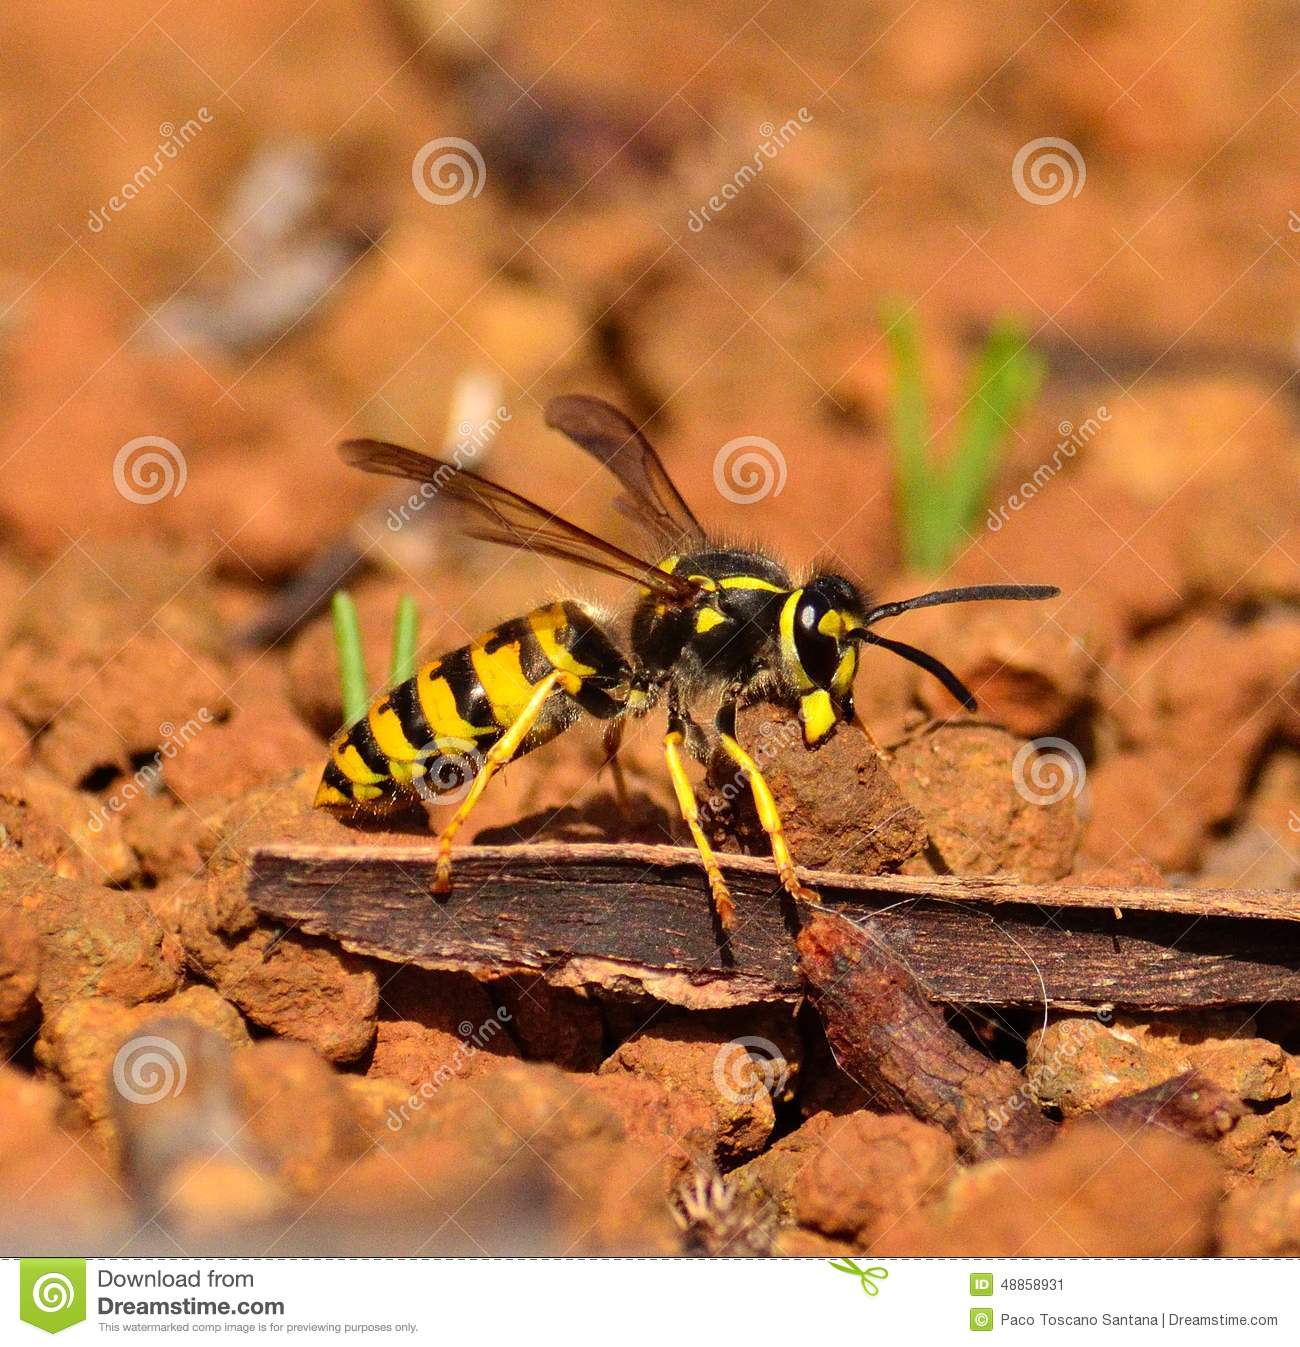 Large Wasp Vespula Germanica Carrying Small Stone With Its Jaws.